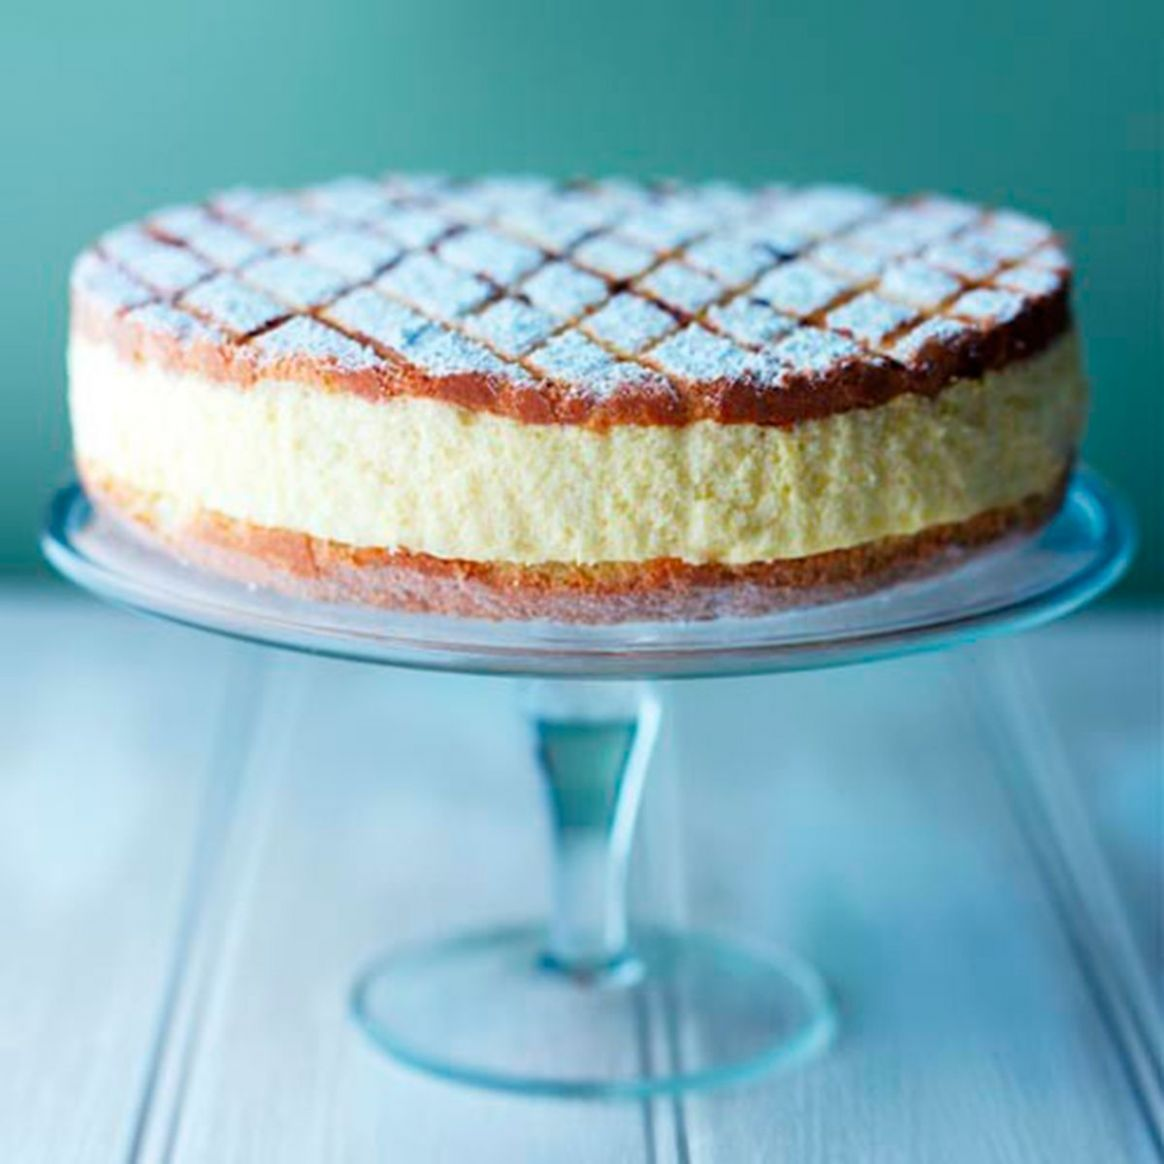 Delicious patisserie recipes inspired by GBBO | British bake off ..